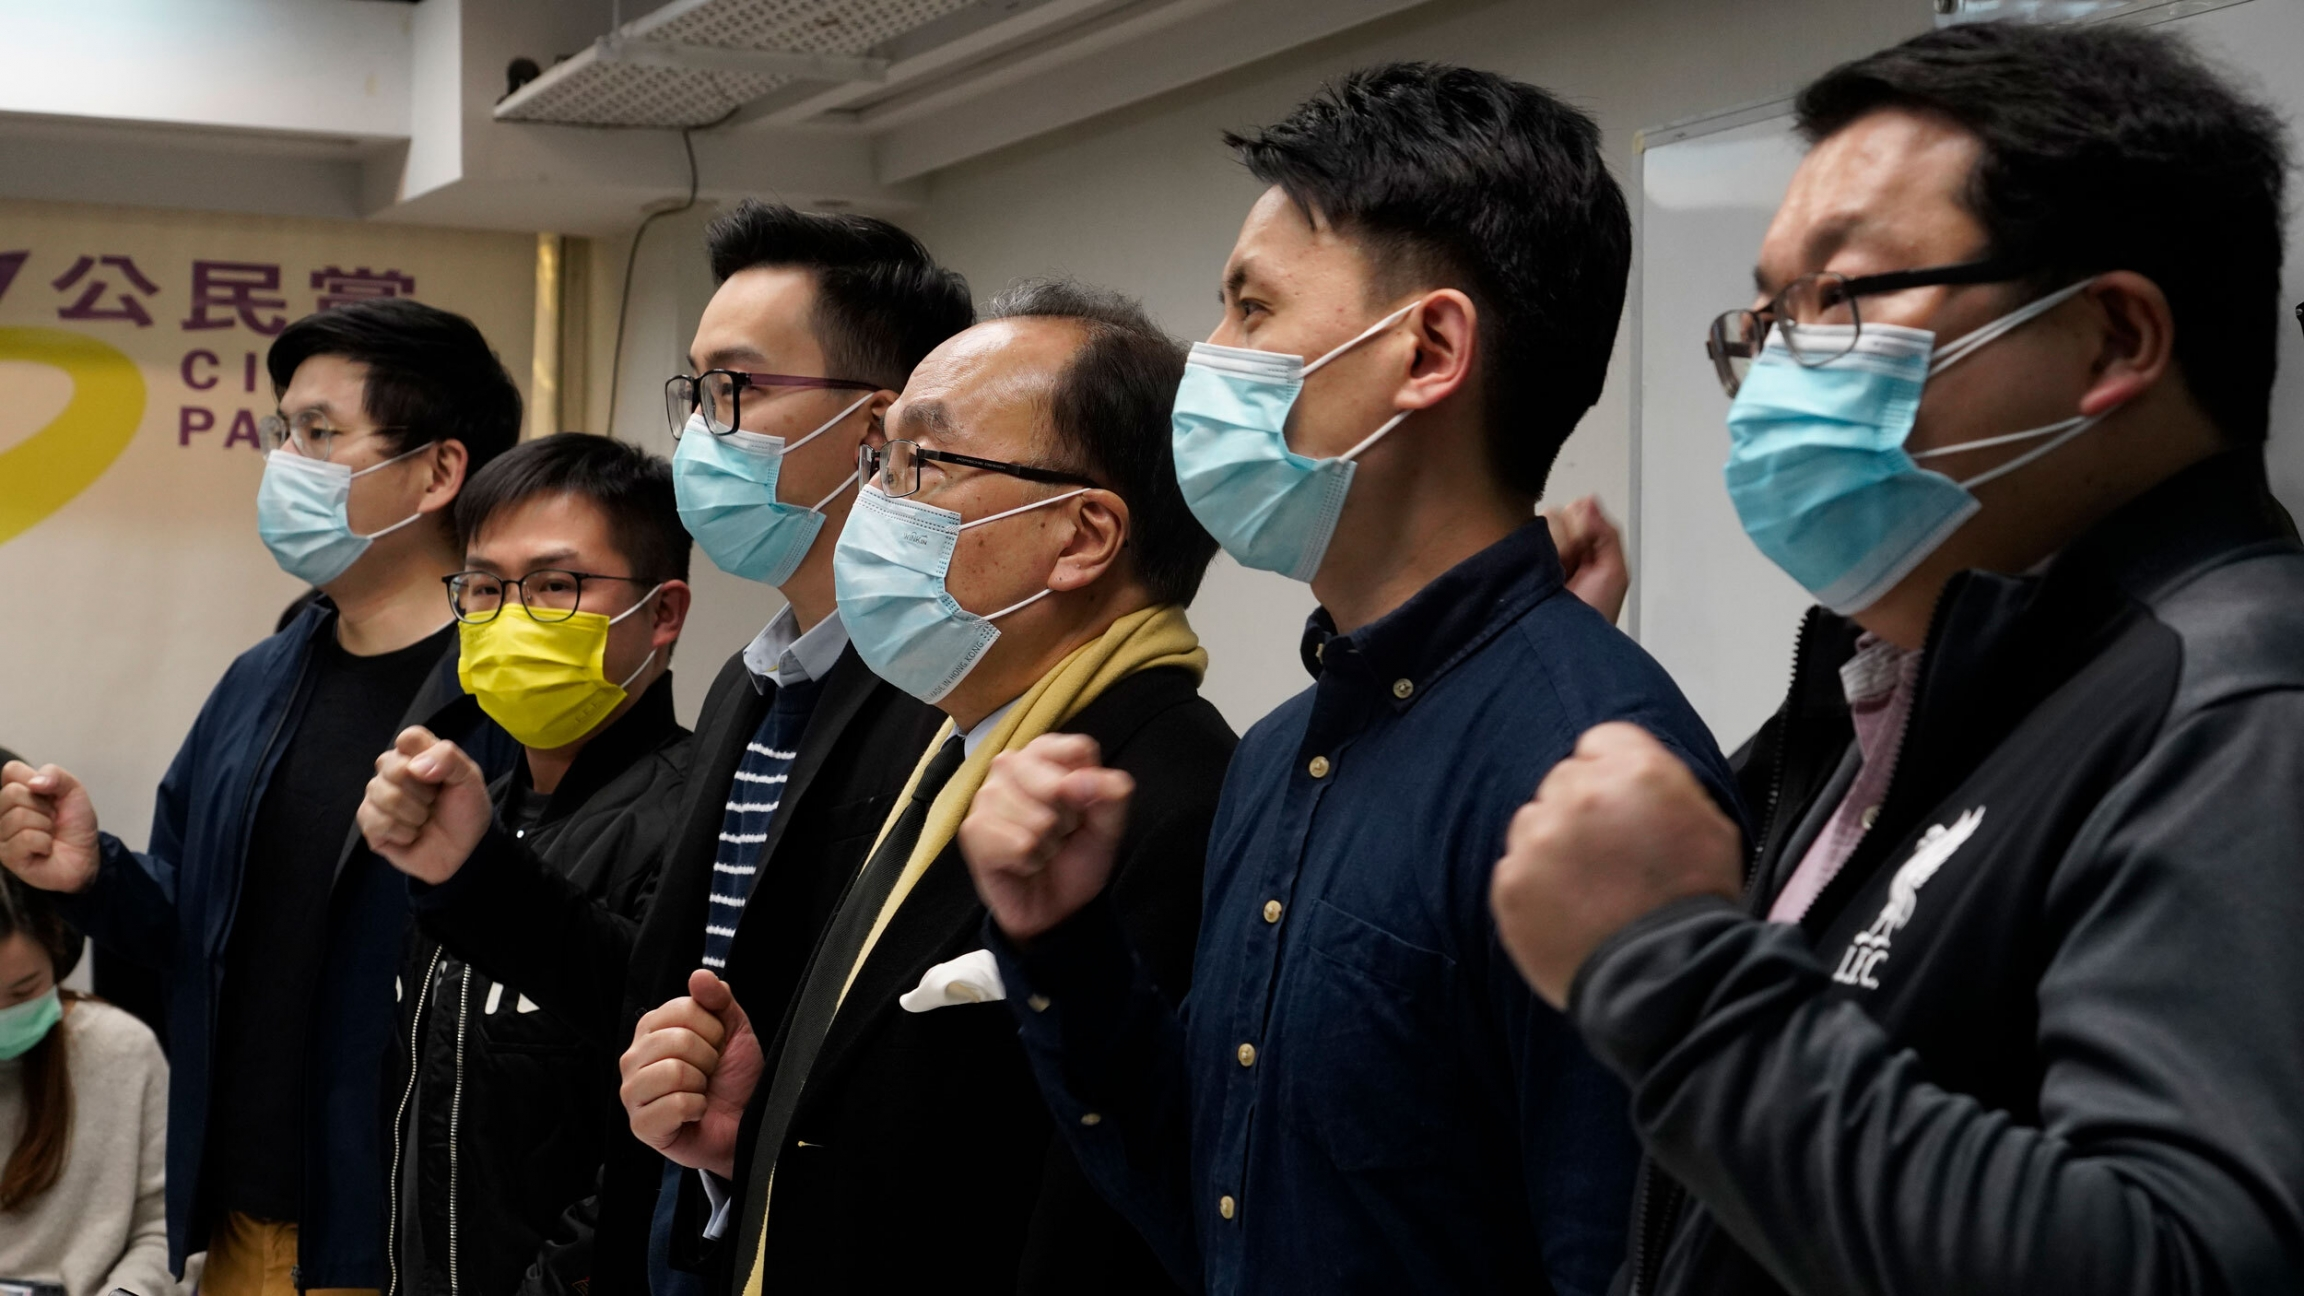 Six people wearing medical masks stand and shout slogans.